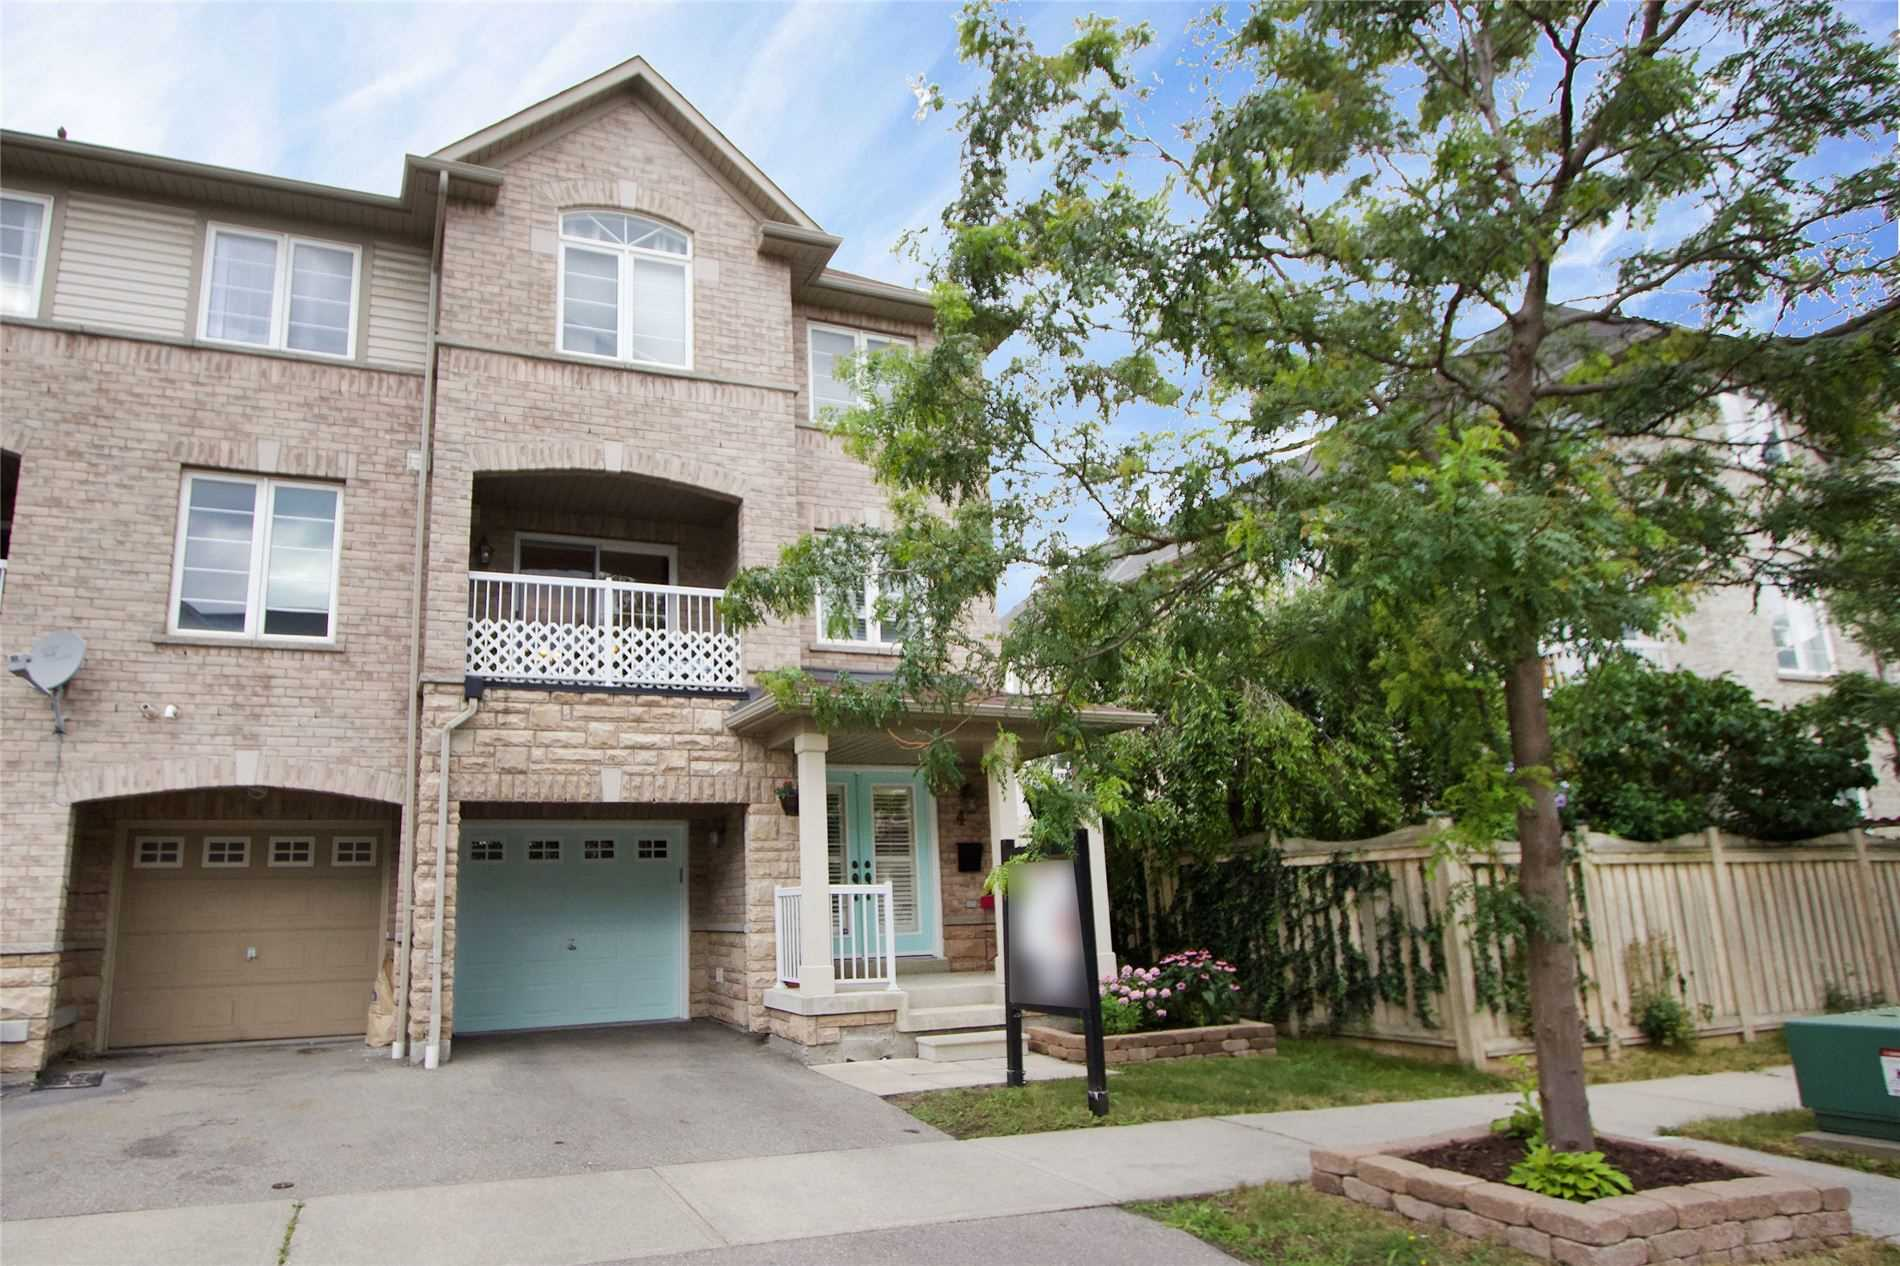 FEATURED LISTING: 4 Burnsborough Street Ajax